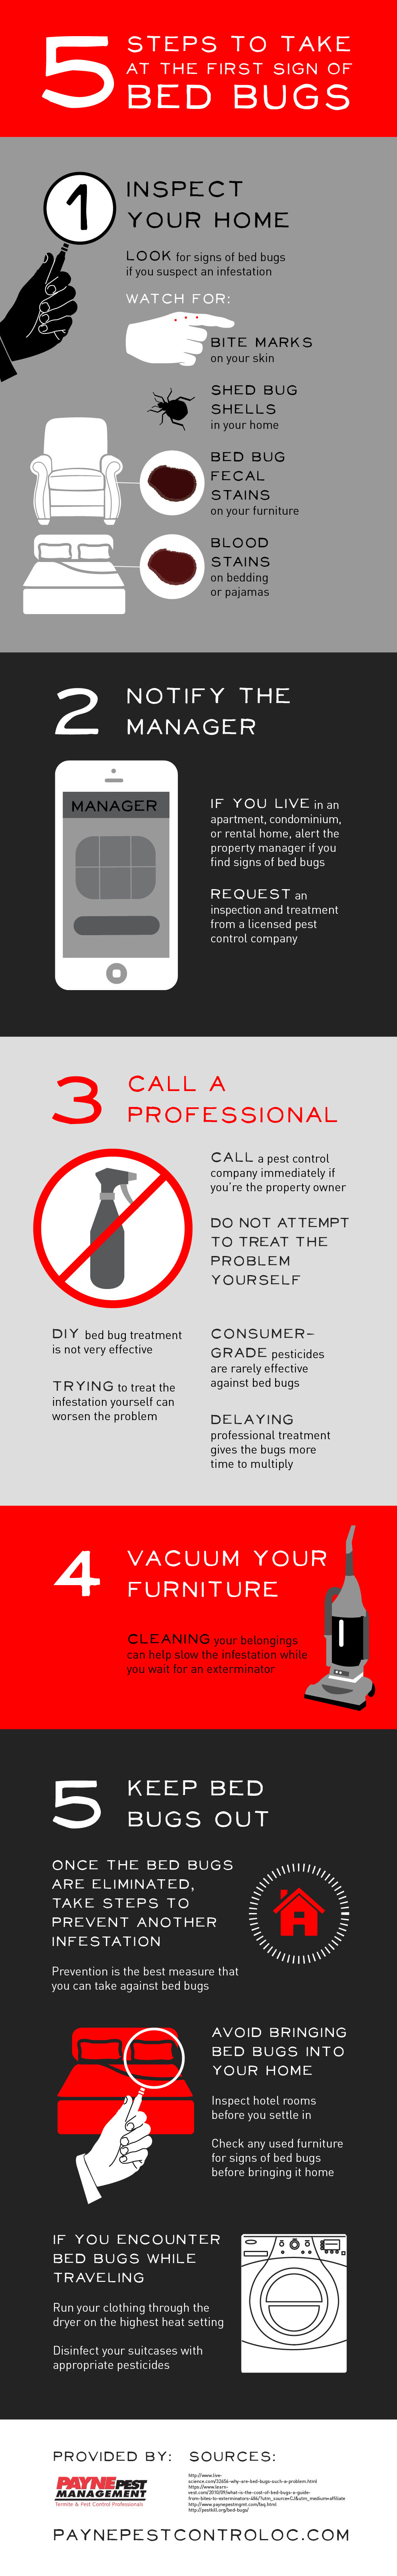 5 Methods to Eradicate and Prevent Beg Bugs at Home - Infographic